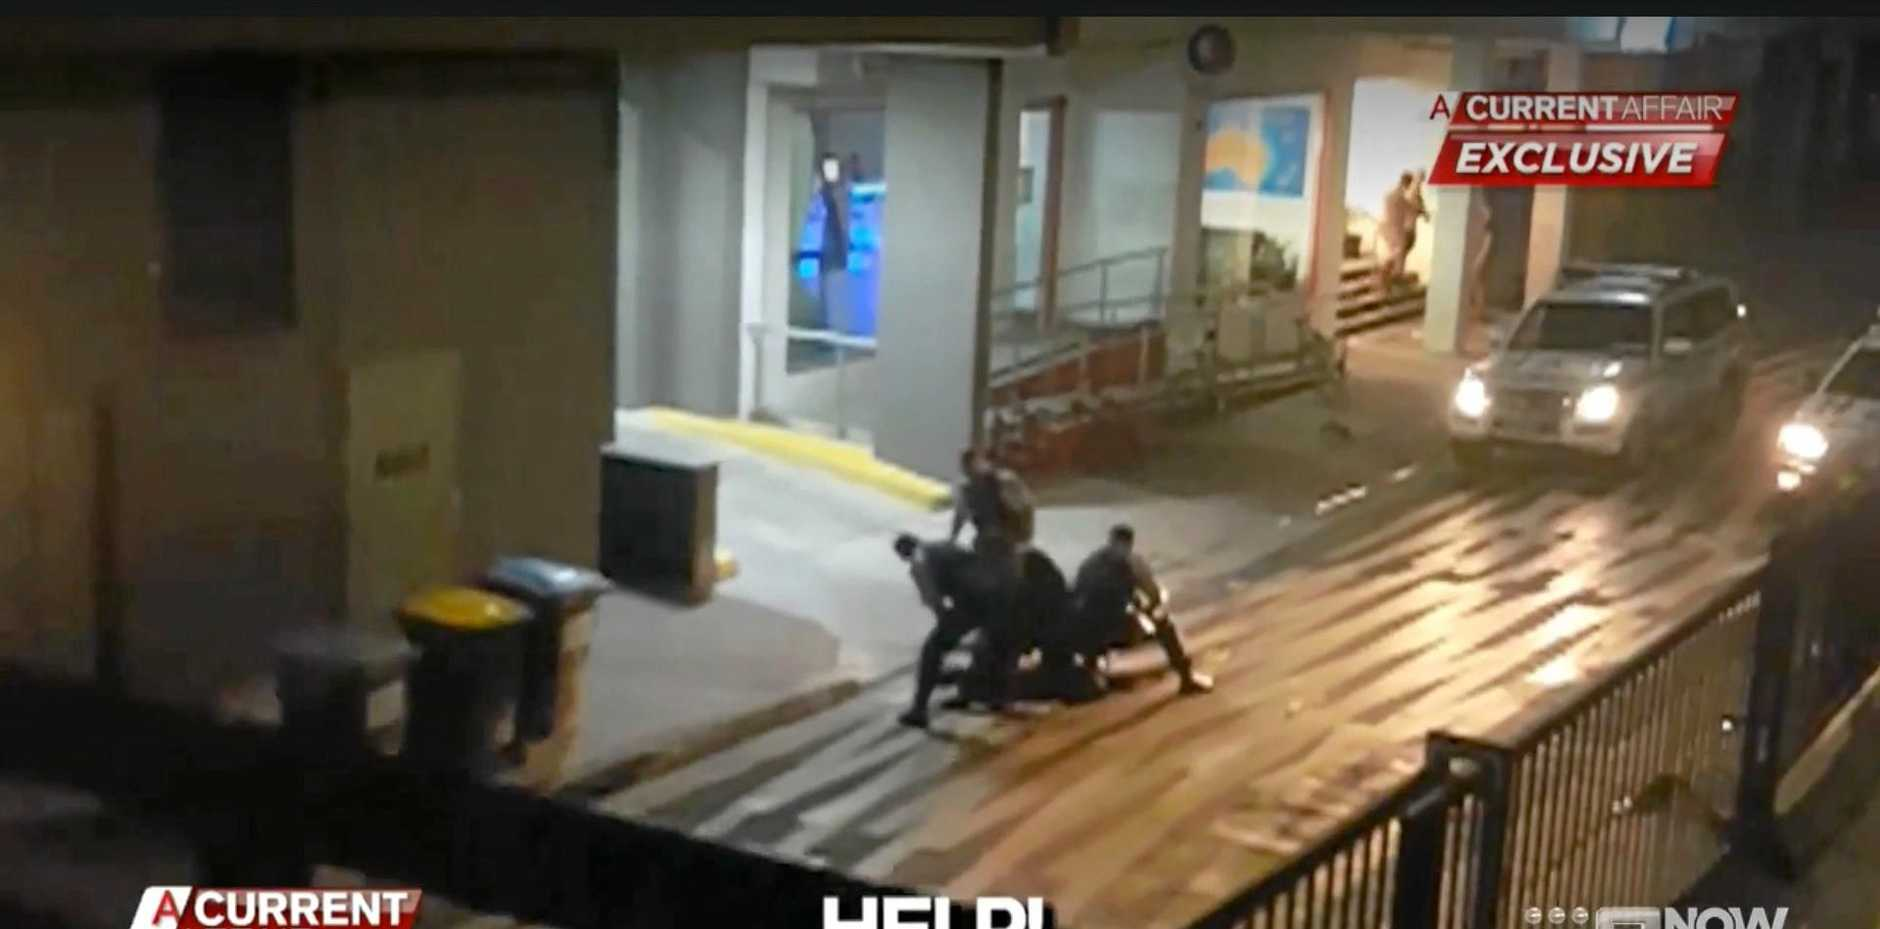 Footage from A Current Affair of the police arrest at Lateen Lane, Byron Bay.